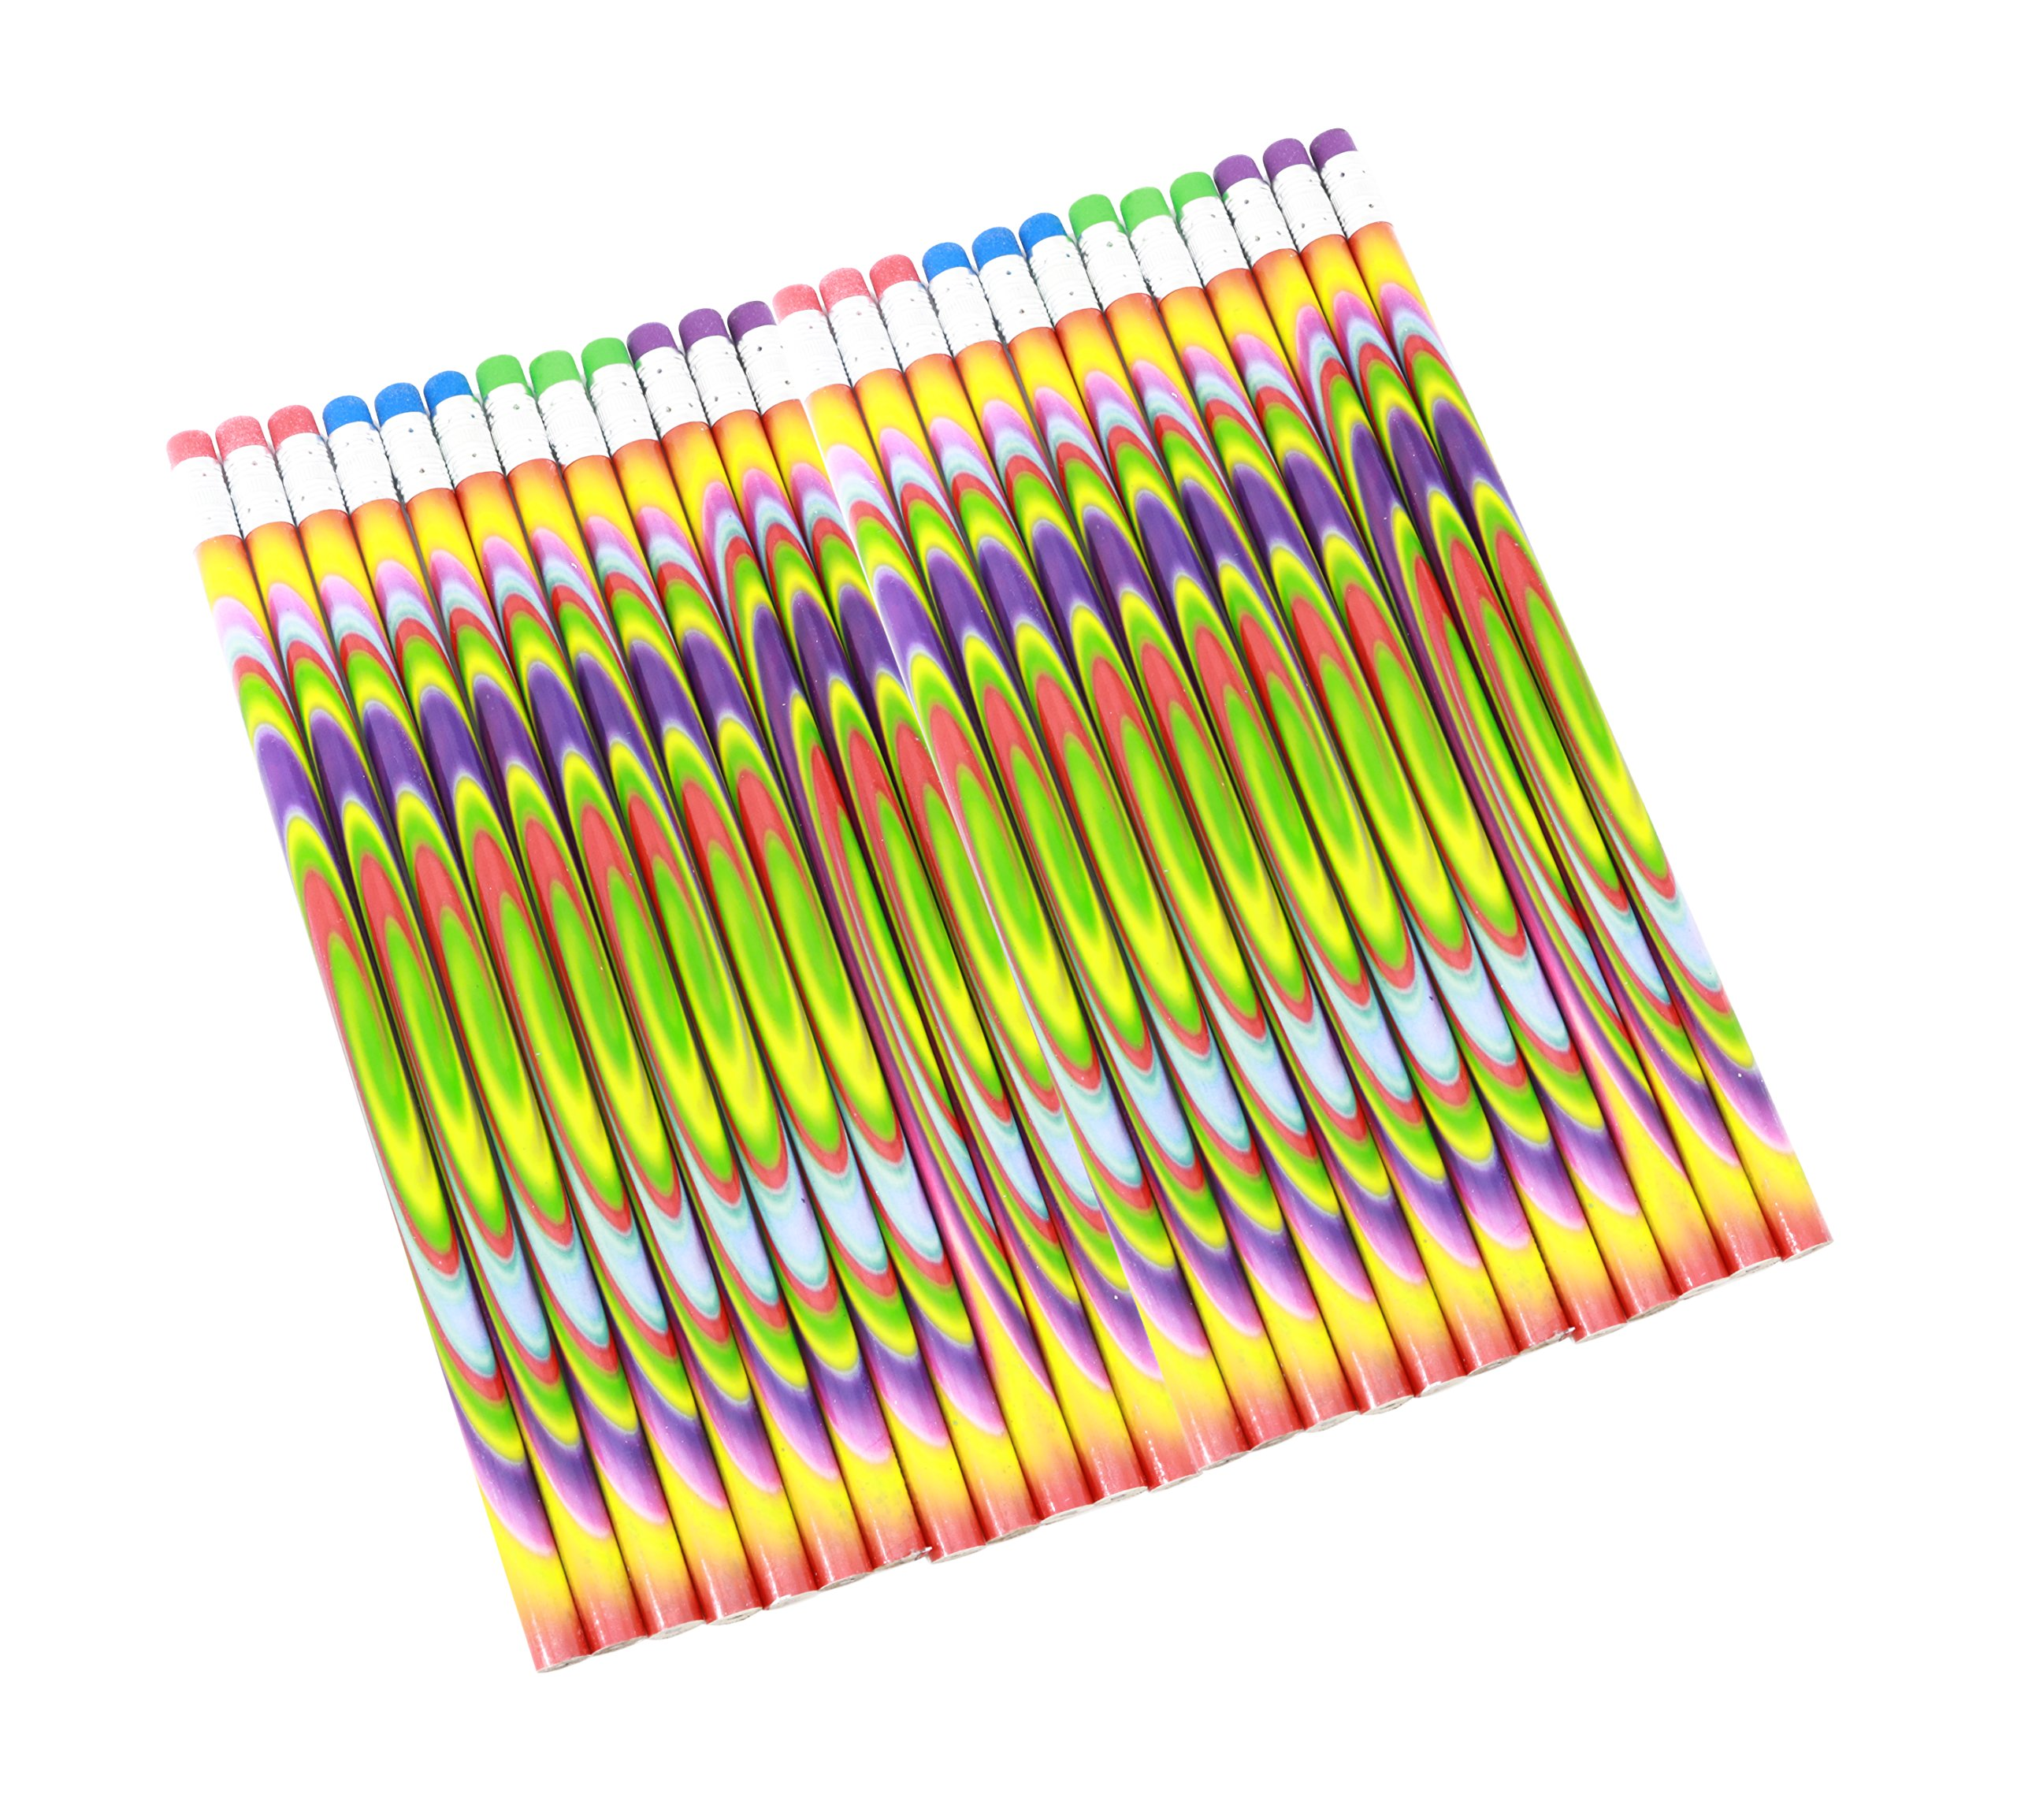 Colorful Tie Dye Pencils Bulk Pack Of 144 Pencils For School Supplies And Classroom Rewards